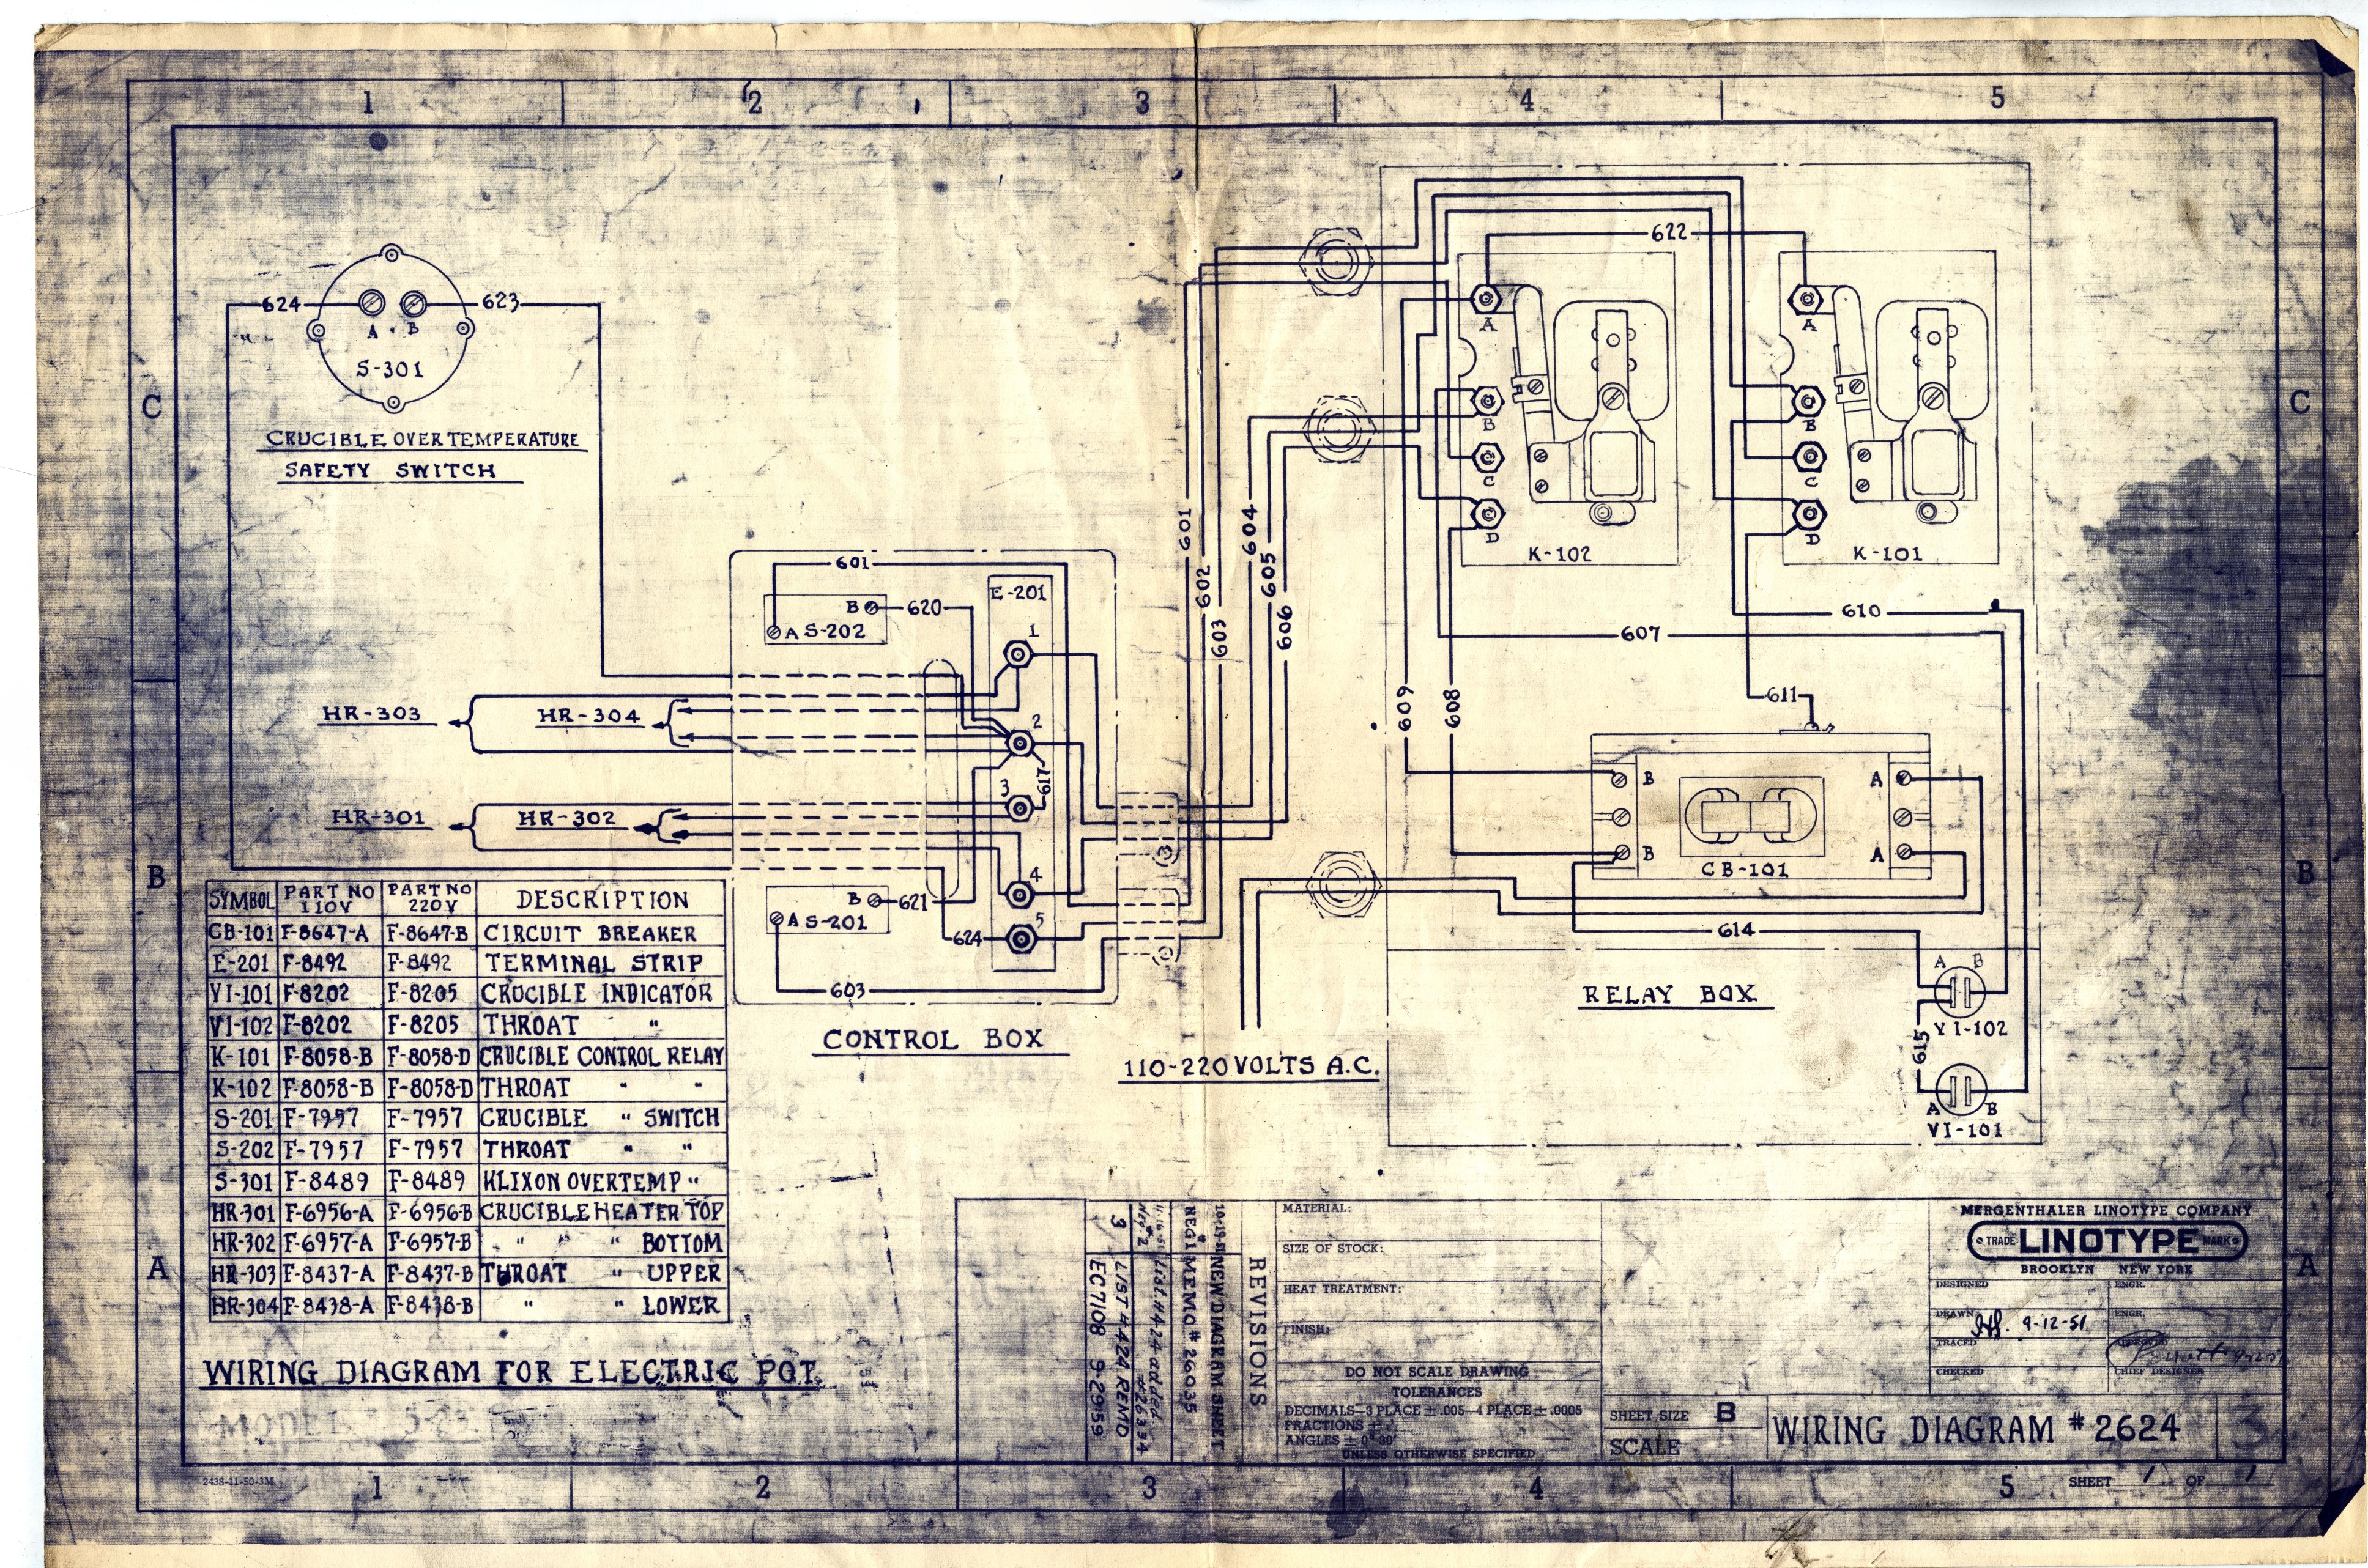 Mergenthaler Linotype Wiring Diagrams Click Diagram For Electric Pot 2624 1 Sheet Brooklyn Ny Company 1951 1959 Drawn 02 12